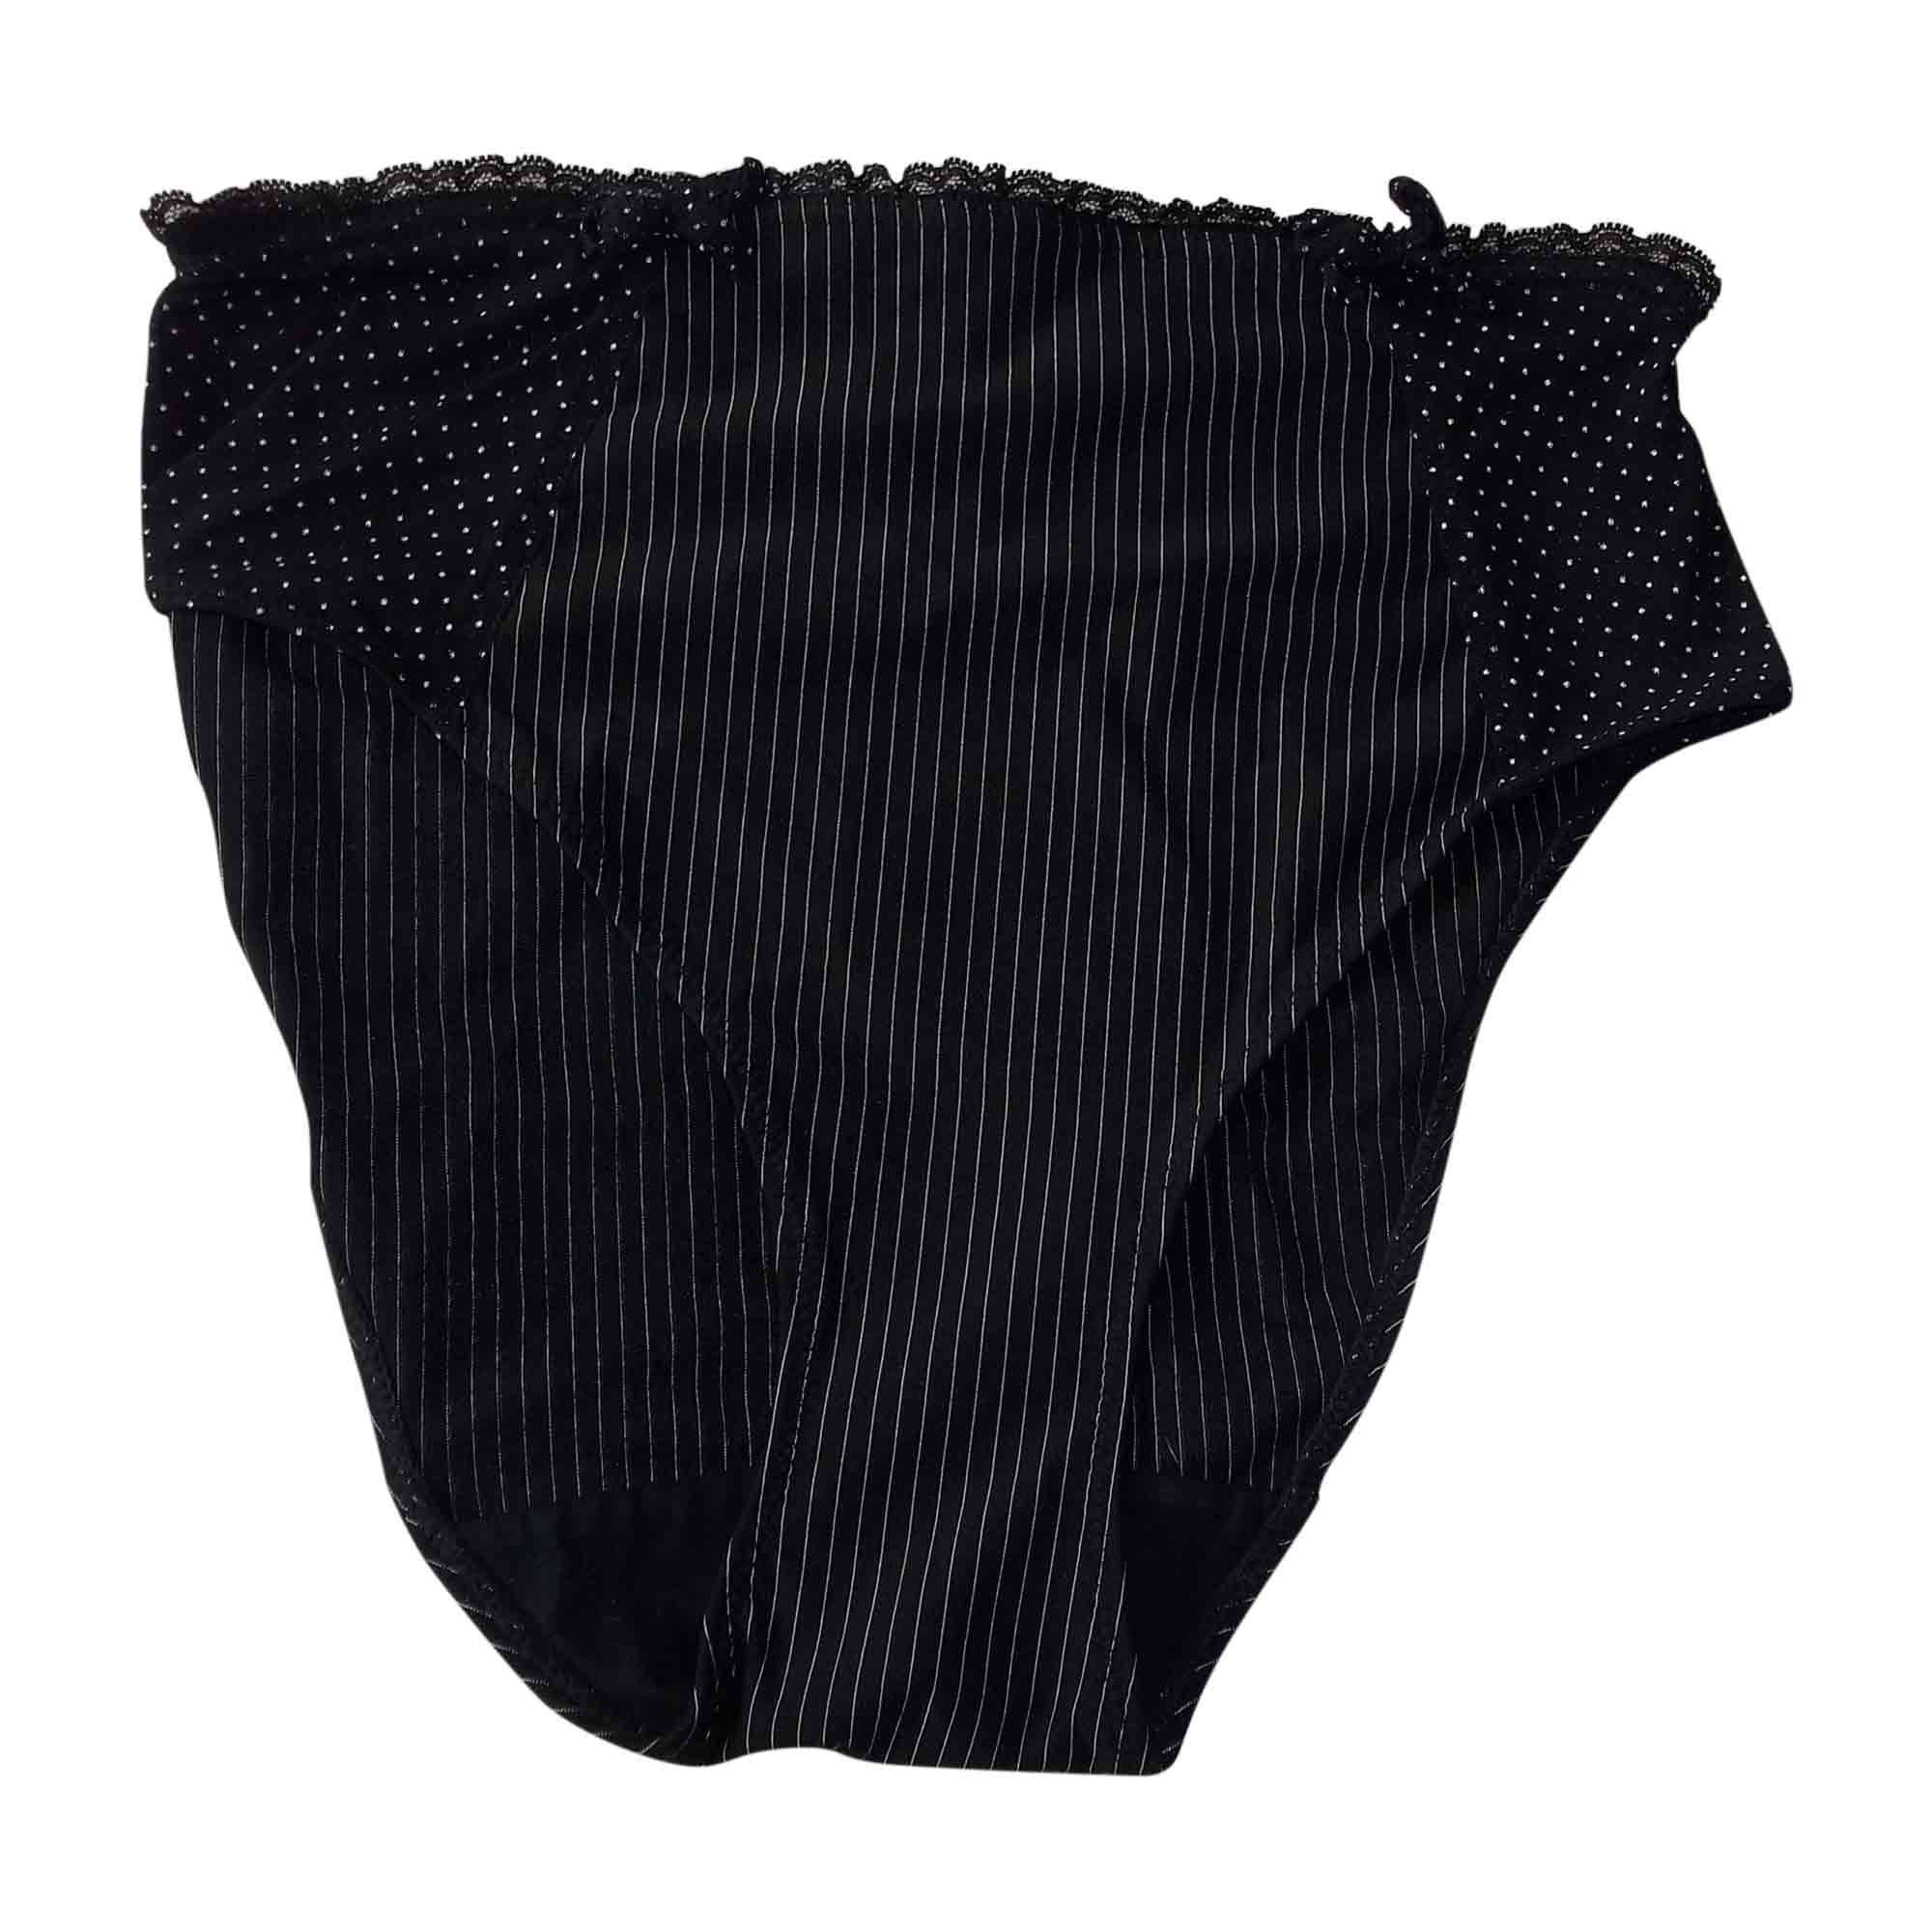 Culotte CHANTAL THOMASS Noir